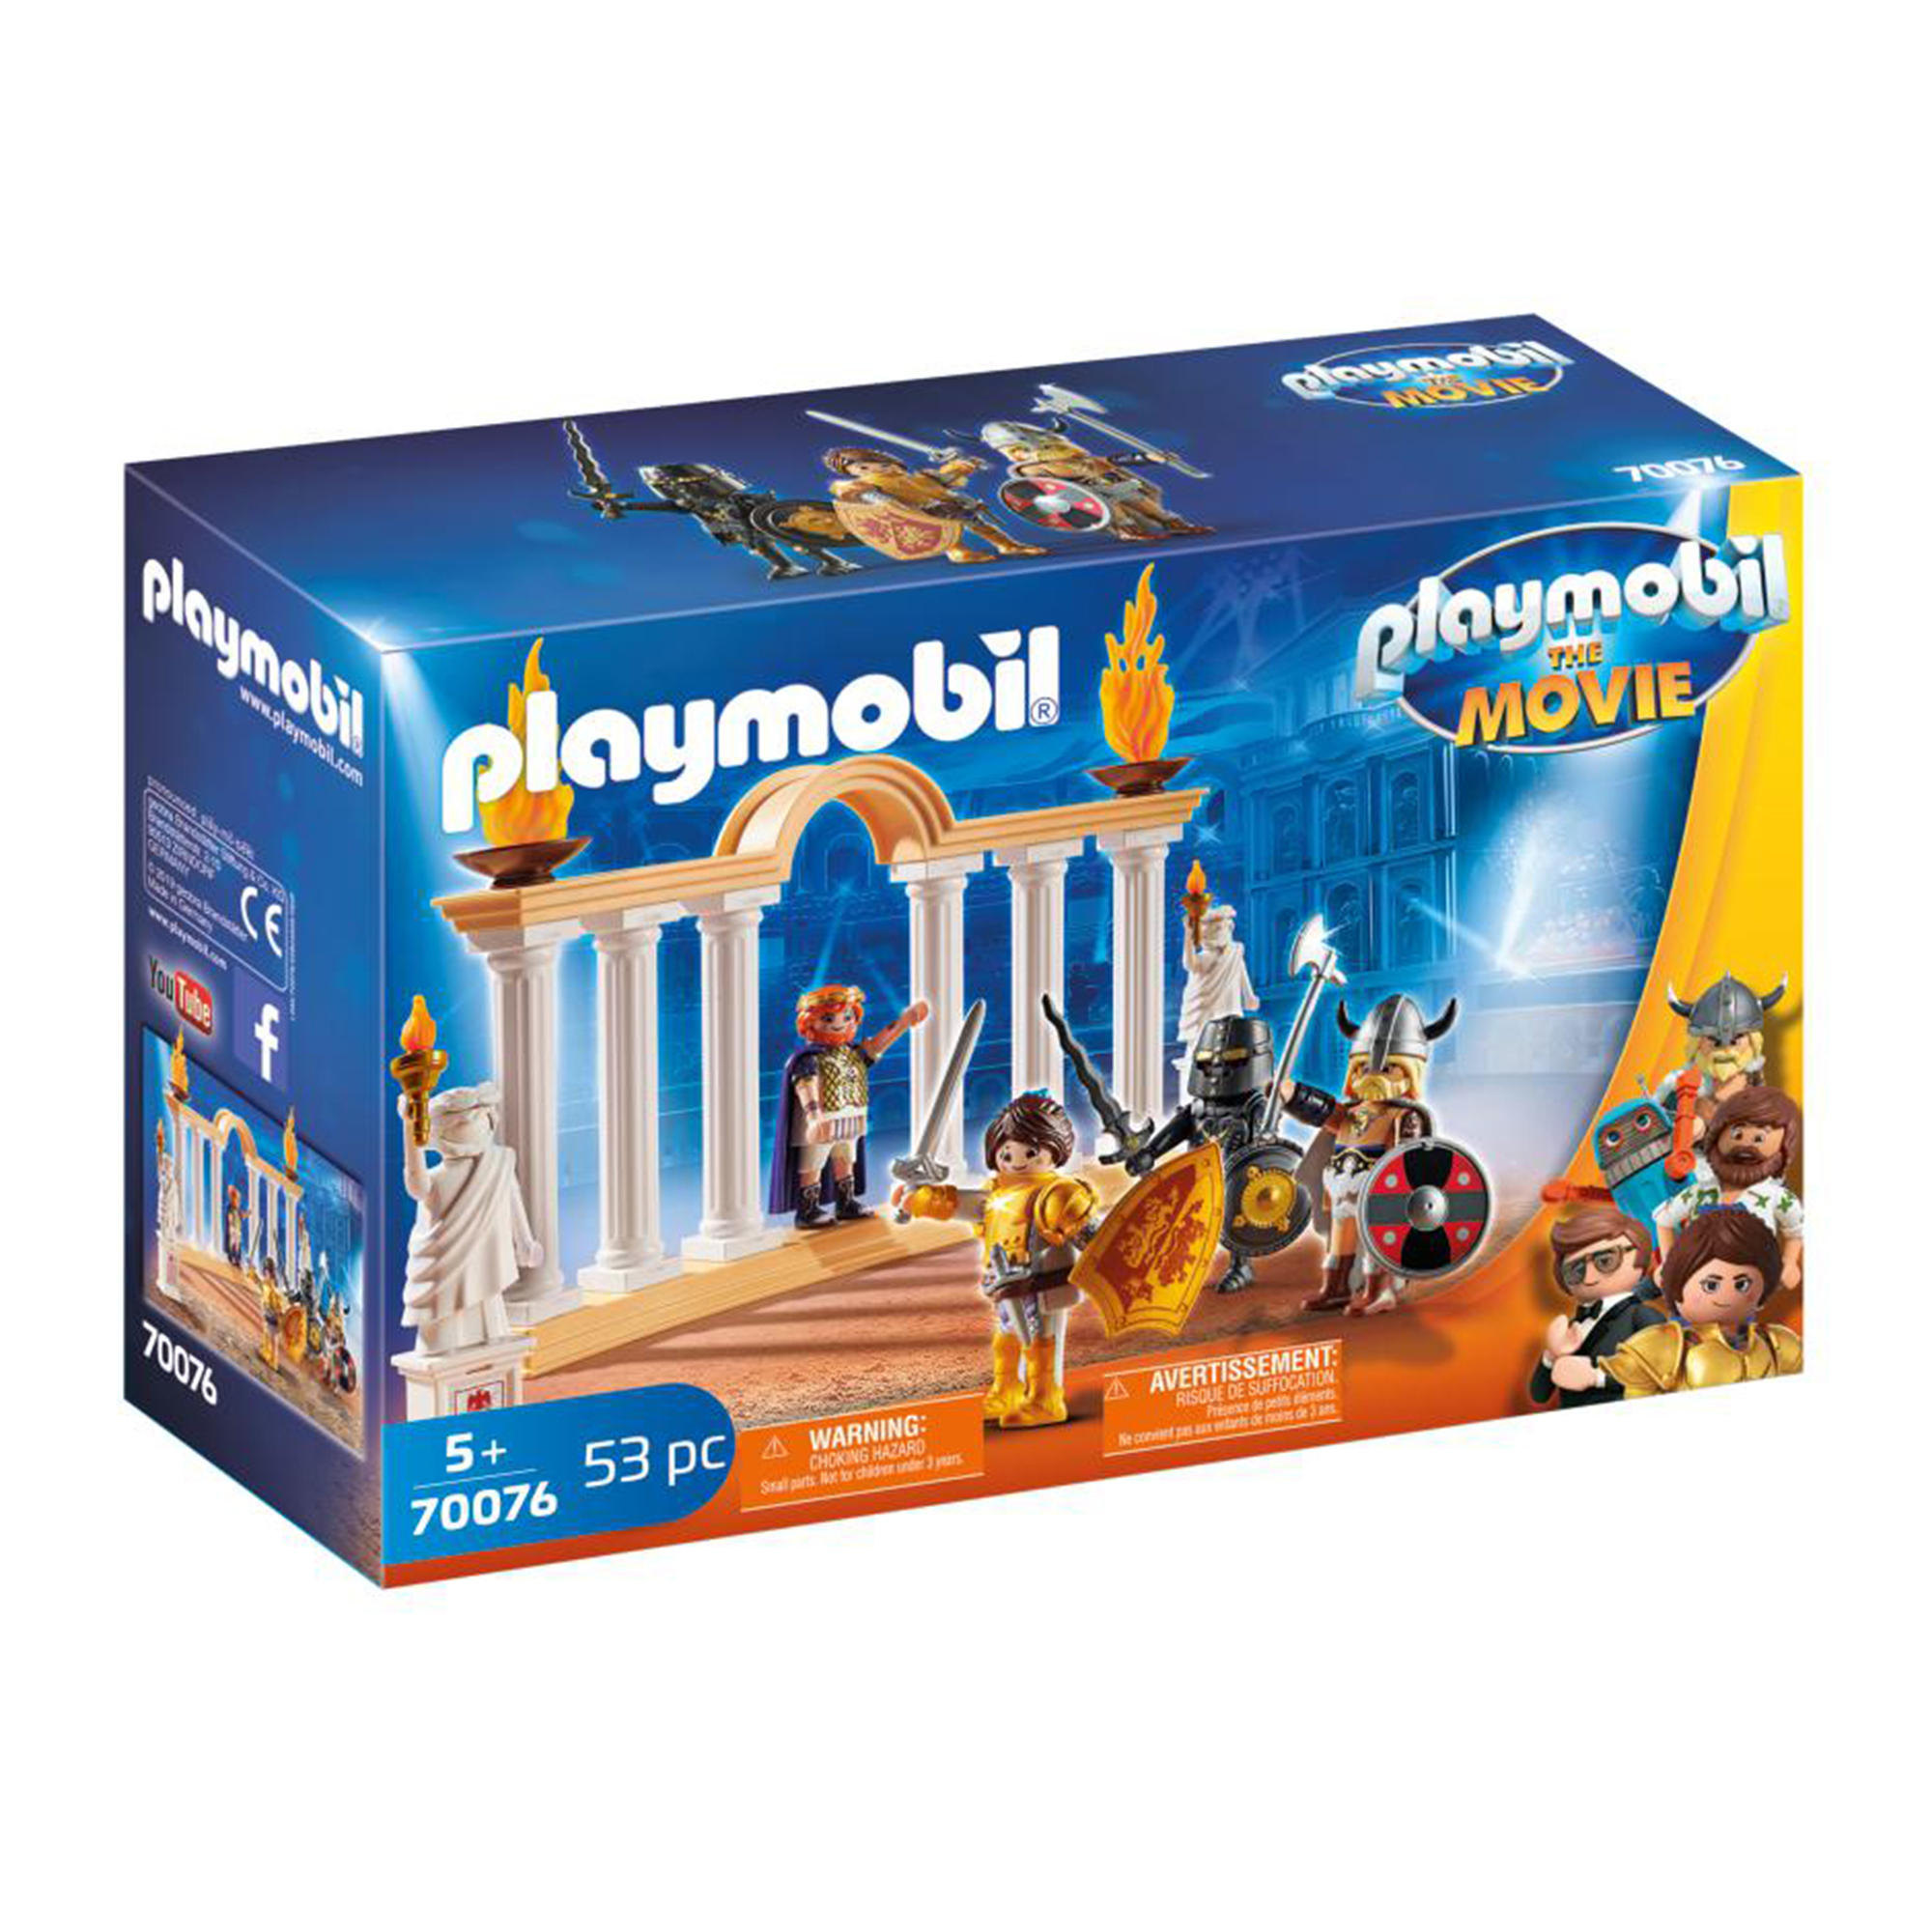 Playmobil 70076 Playmobil: THE MOVIE Emperor Maximus in the Colosseum